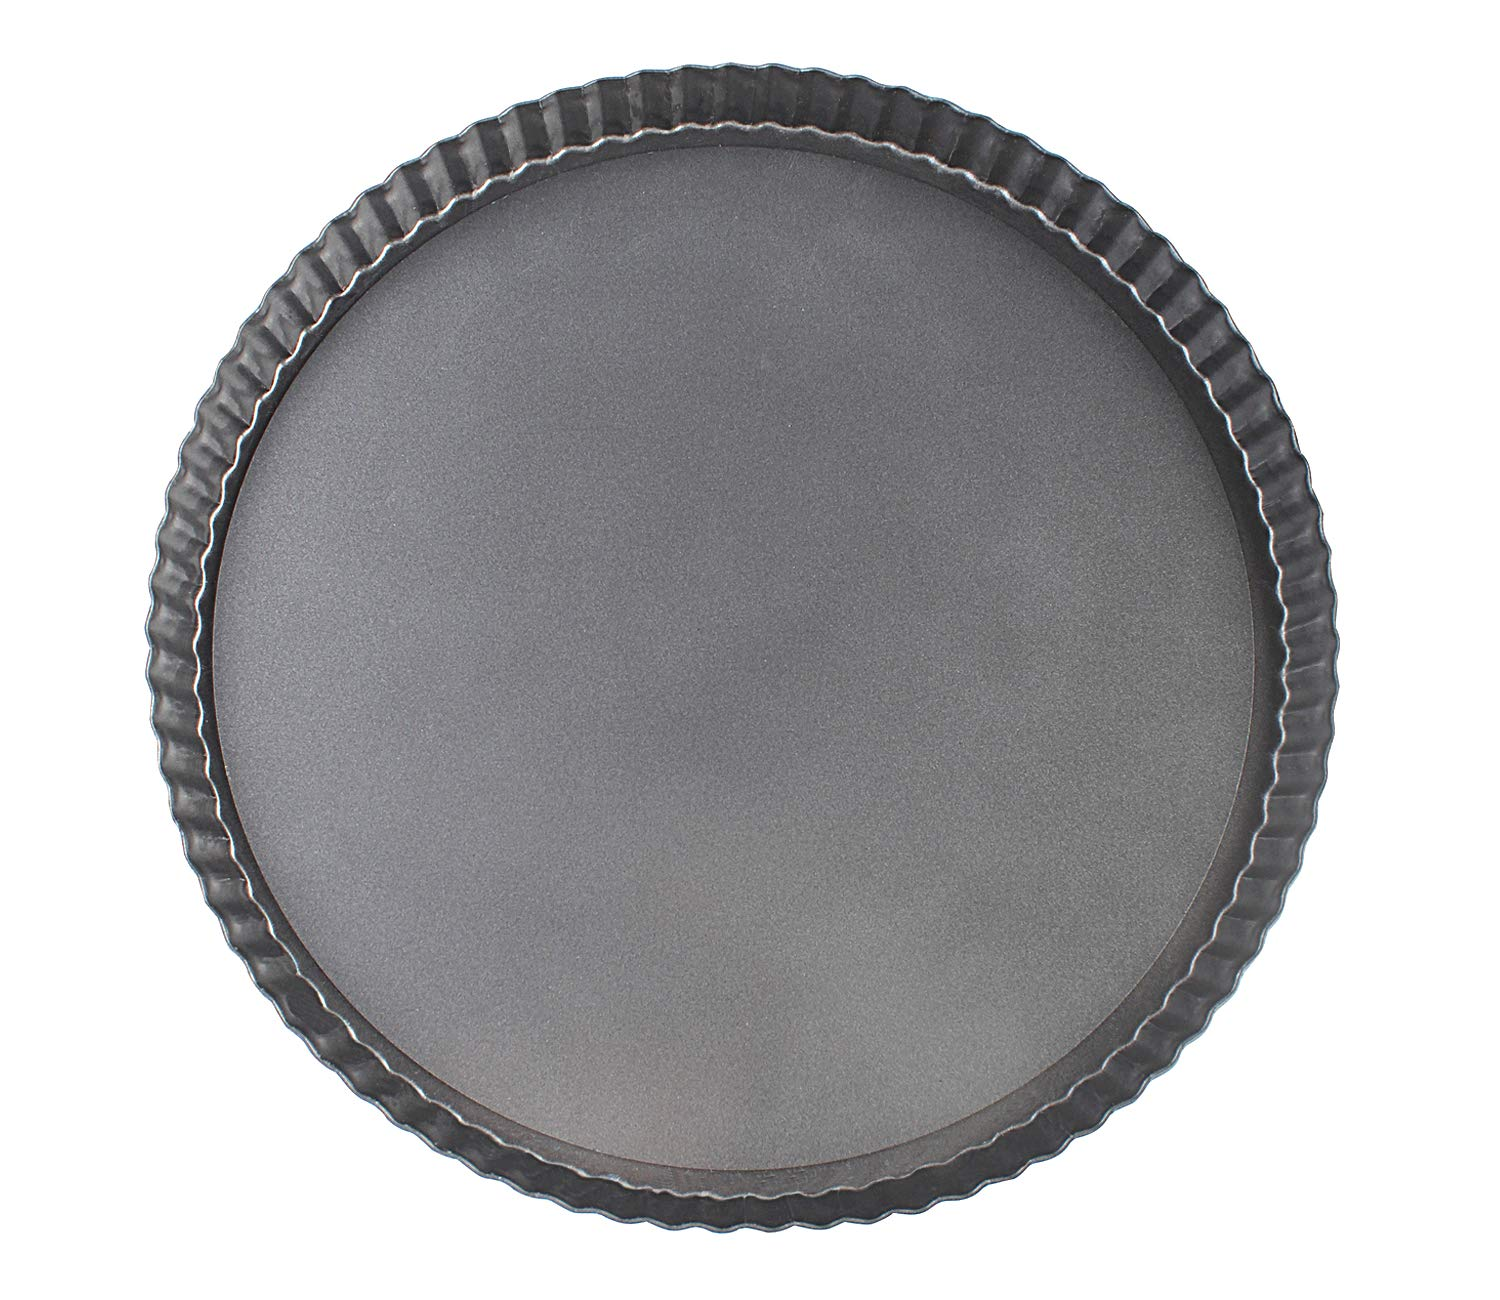 Vanly 12.6-Inch Round Loose Bottom Quiche Tart Pan, Non-stick Tart Pie Pizza Pan with Removable Base